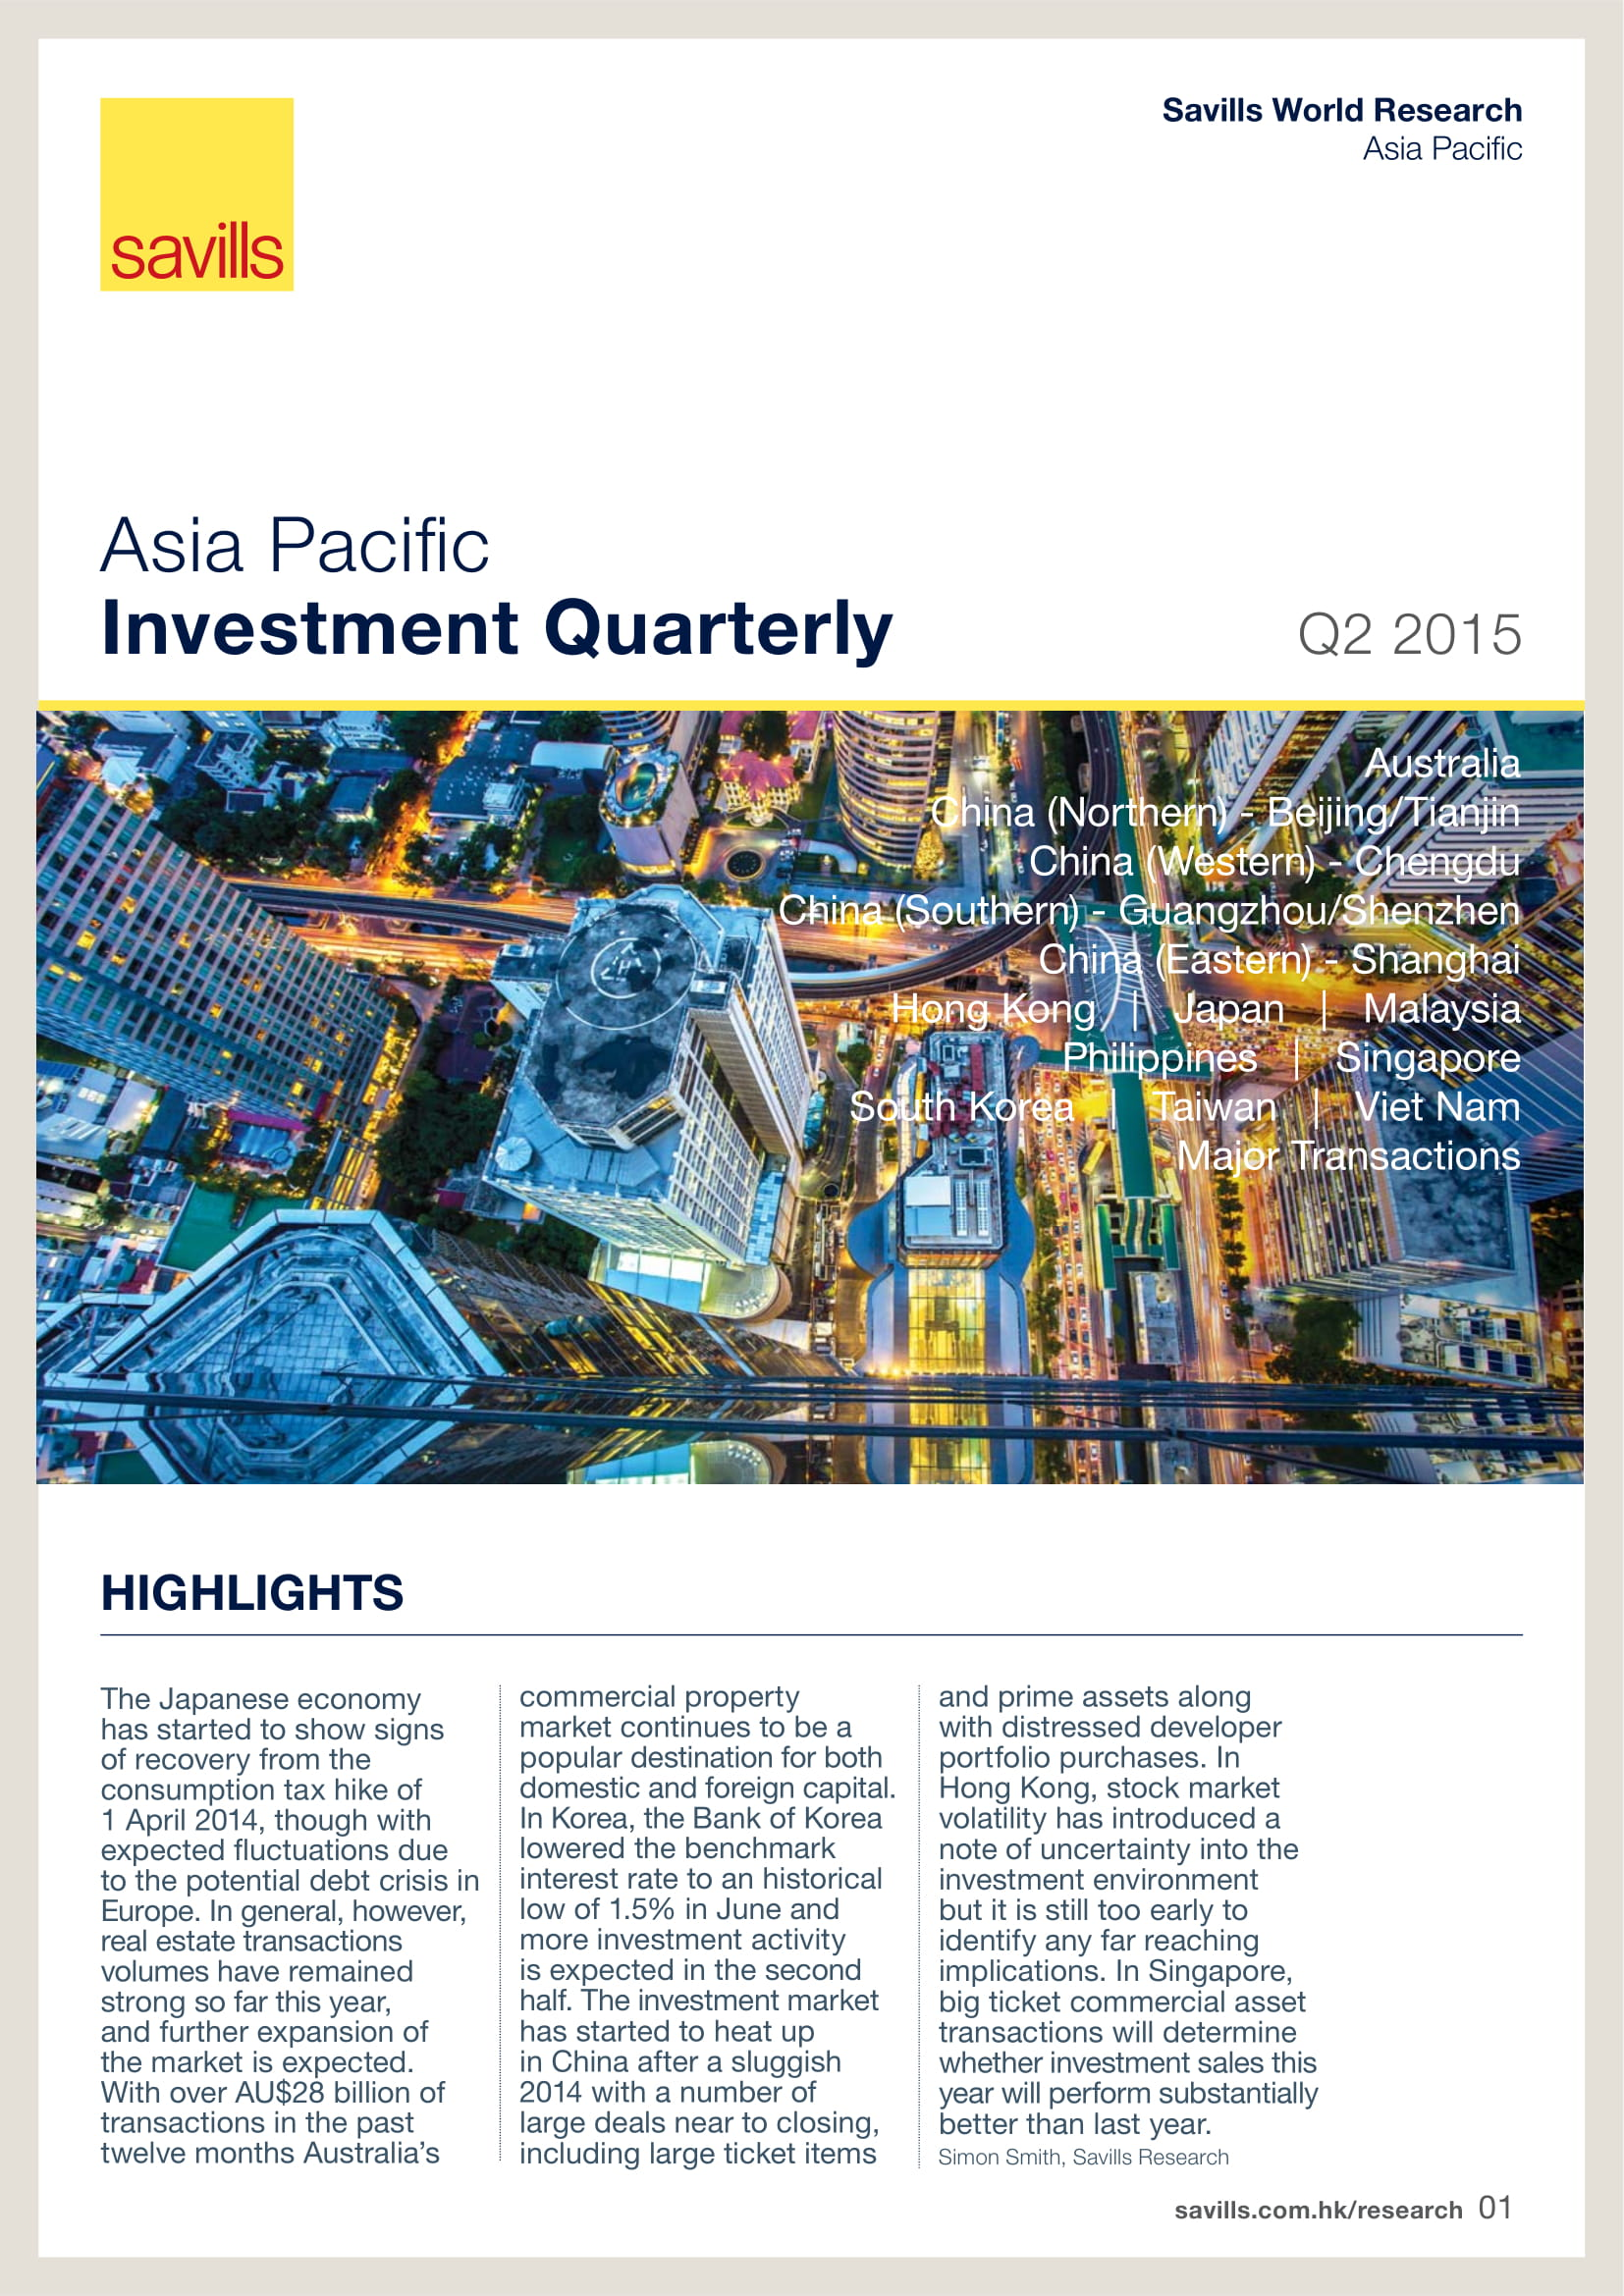 Asia Pacific Investment Quarterly Q2 2015